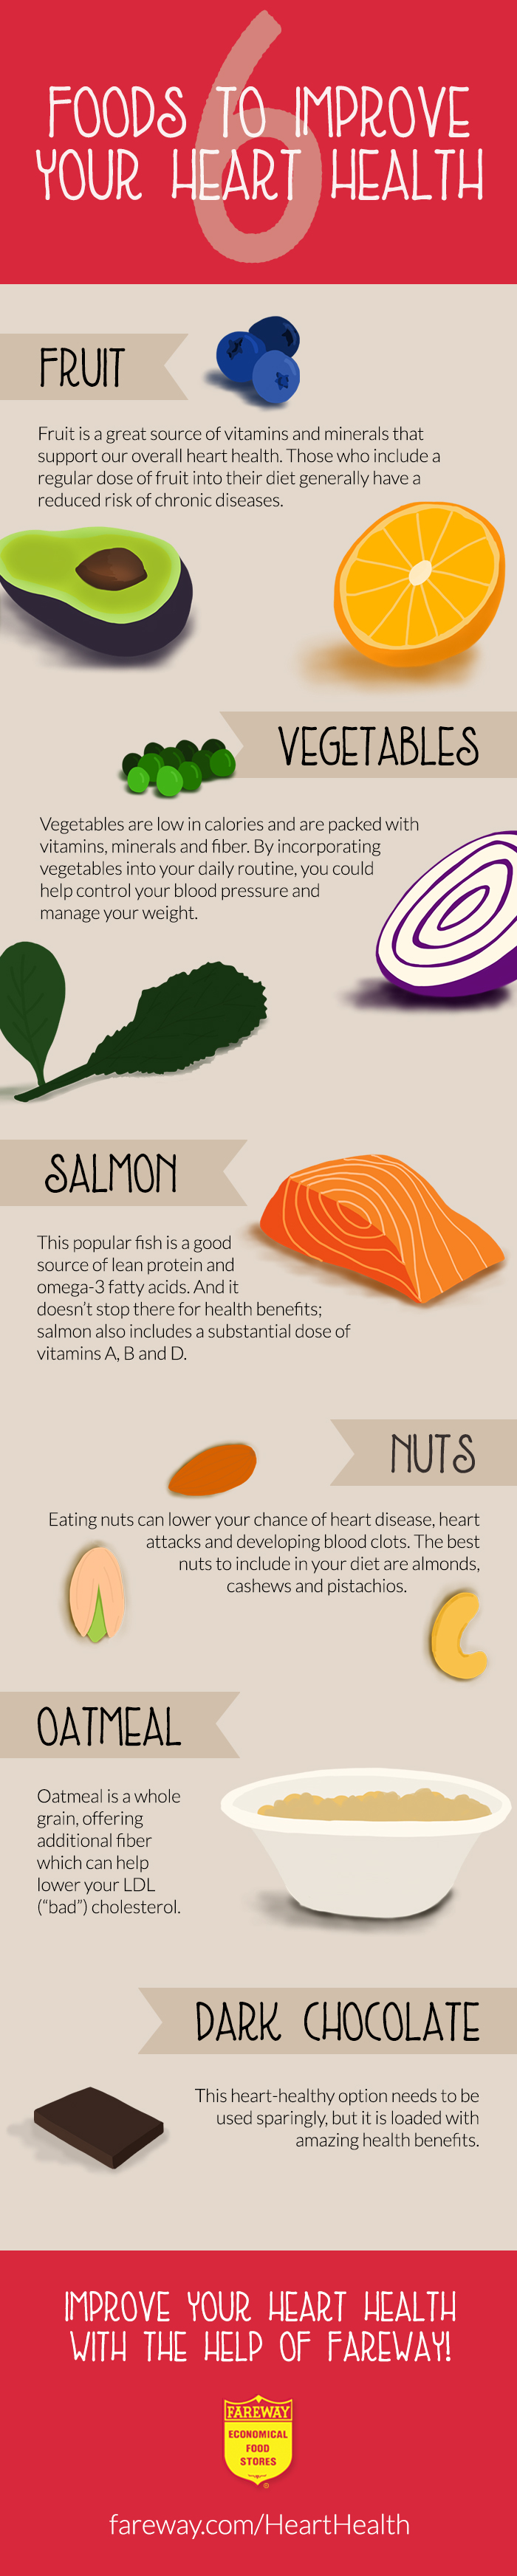 6 Foods to Improve Heart Health